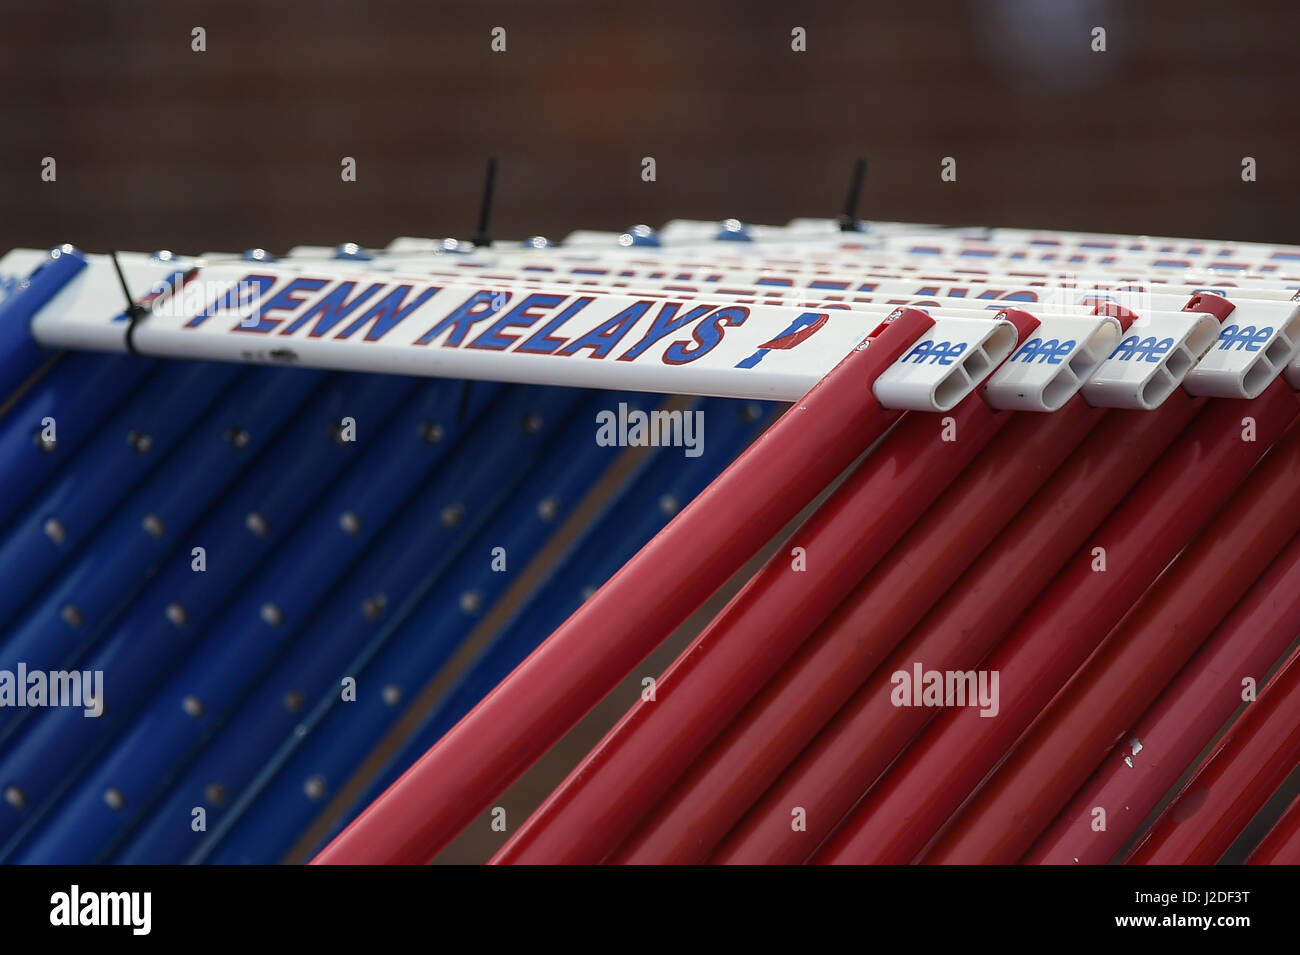 April 27, 2017 Penn Relay hurdles are lined up during the 123rd games of the 2017 Penn Relays at Franklin Field - Stock Image